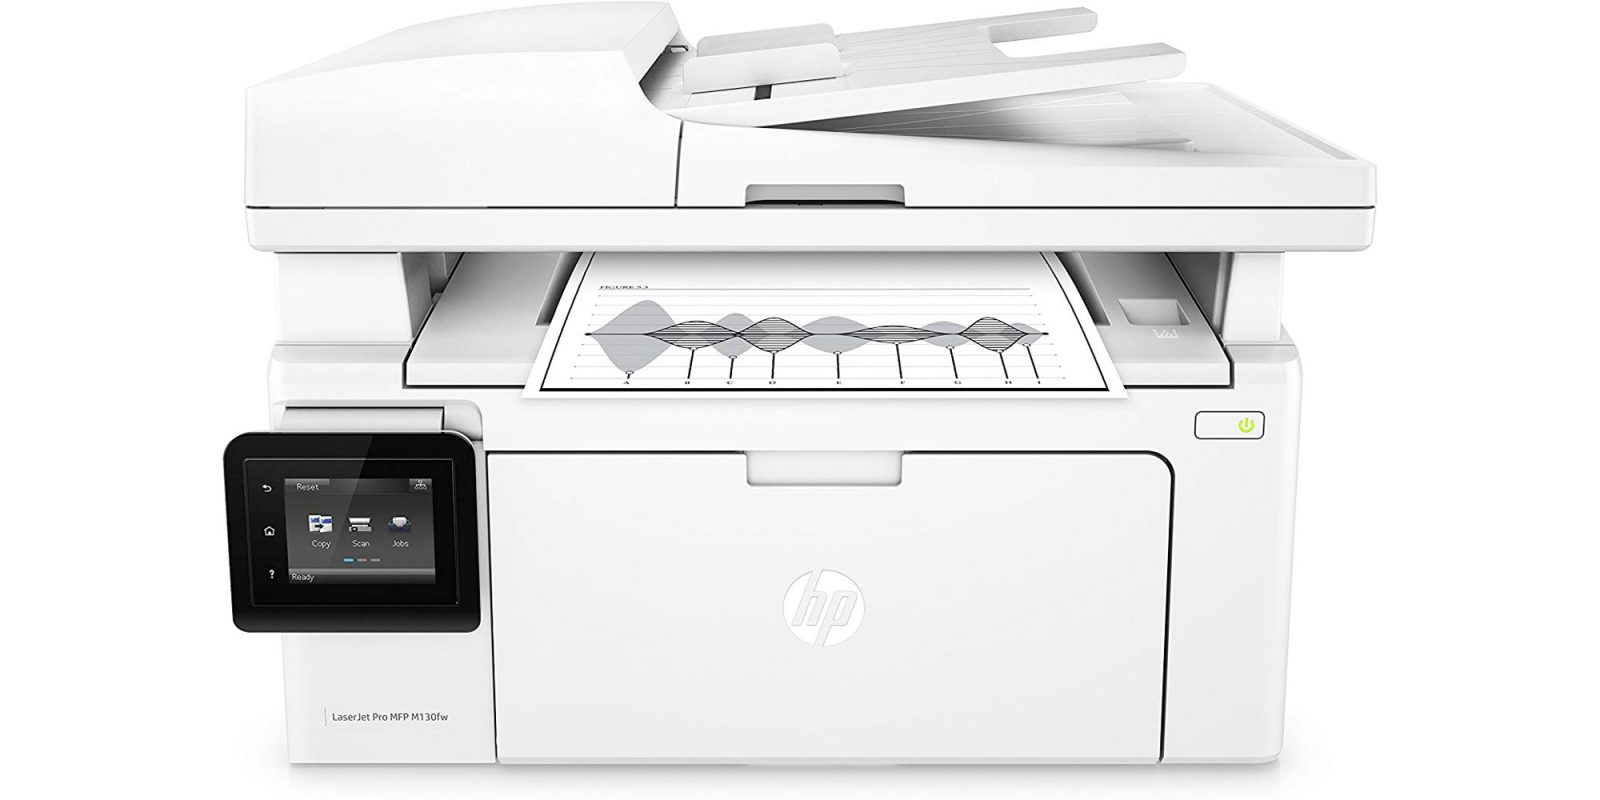 HP's LaserJet Pro AiO sports AirPrint for easy printing at $139 (Reg. $200)